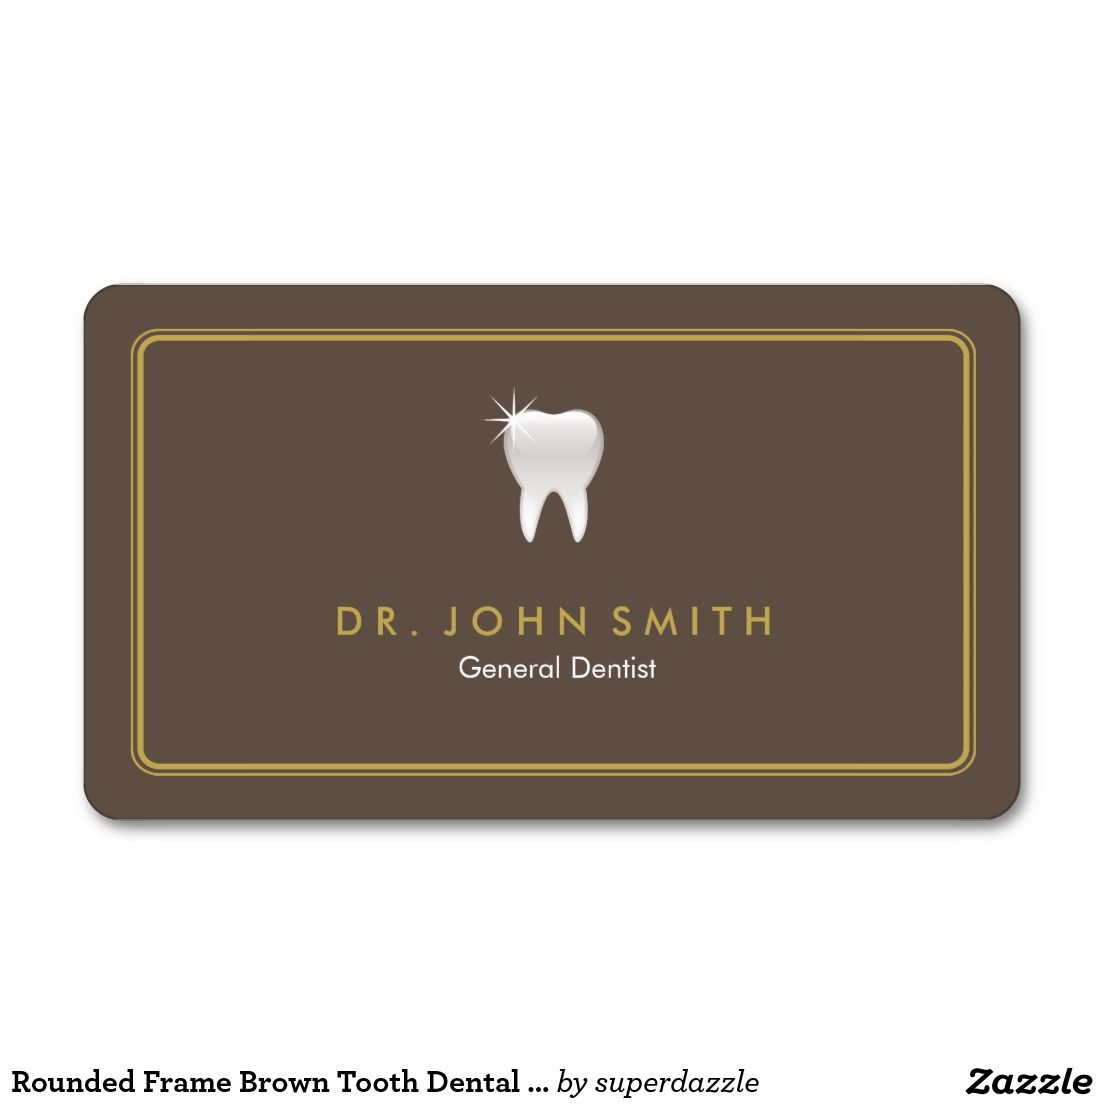 Rounded Frame Brown Tooth Dental Appointment Appointments Dental